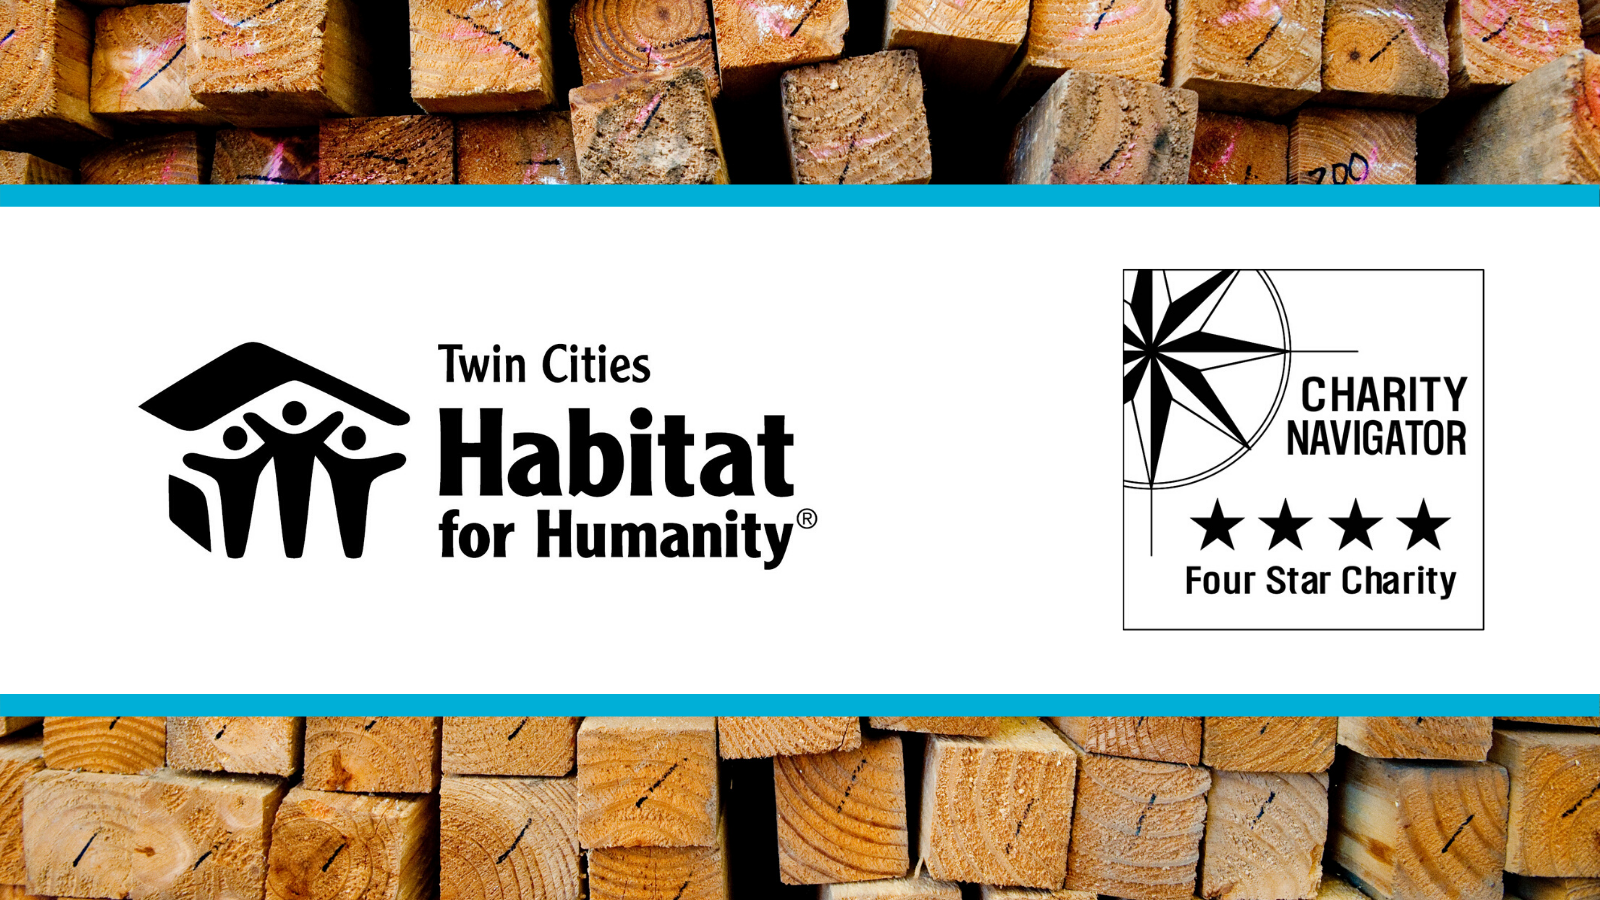 charity navigator four stars twin cities habitat for humanity